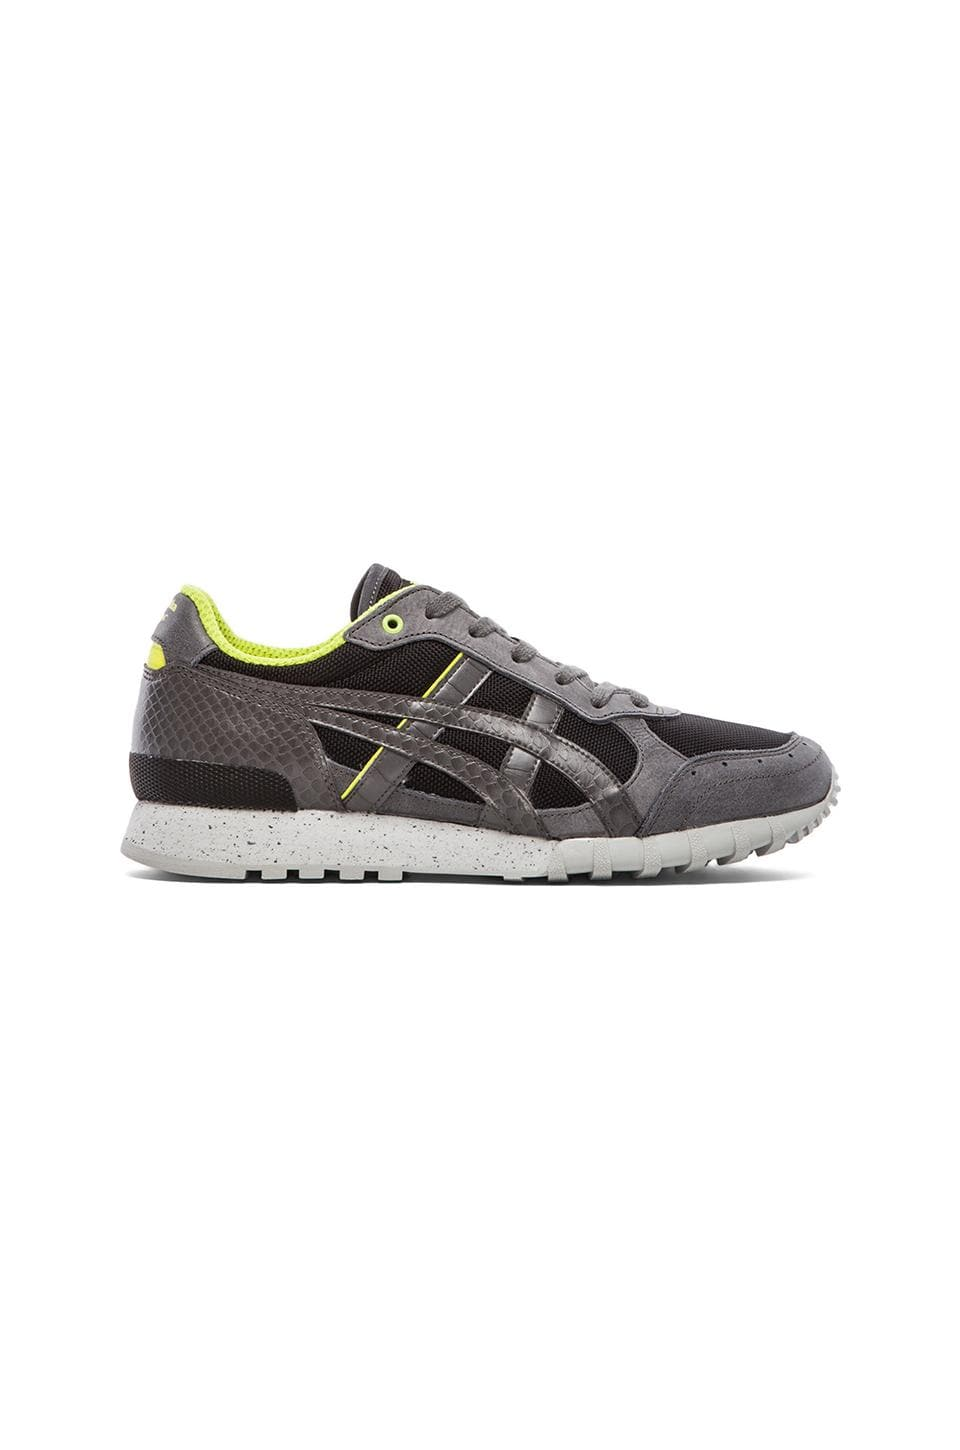 Onitsuka Tiger Colorado Eighty-Five in Black & Grey